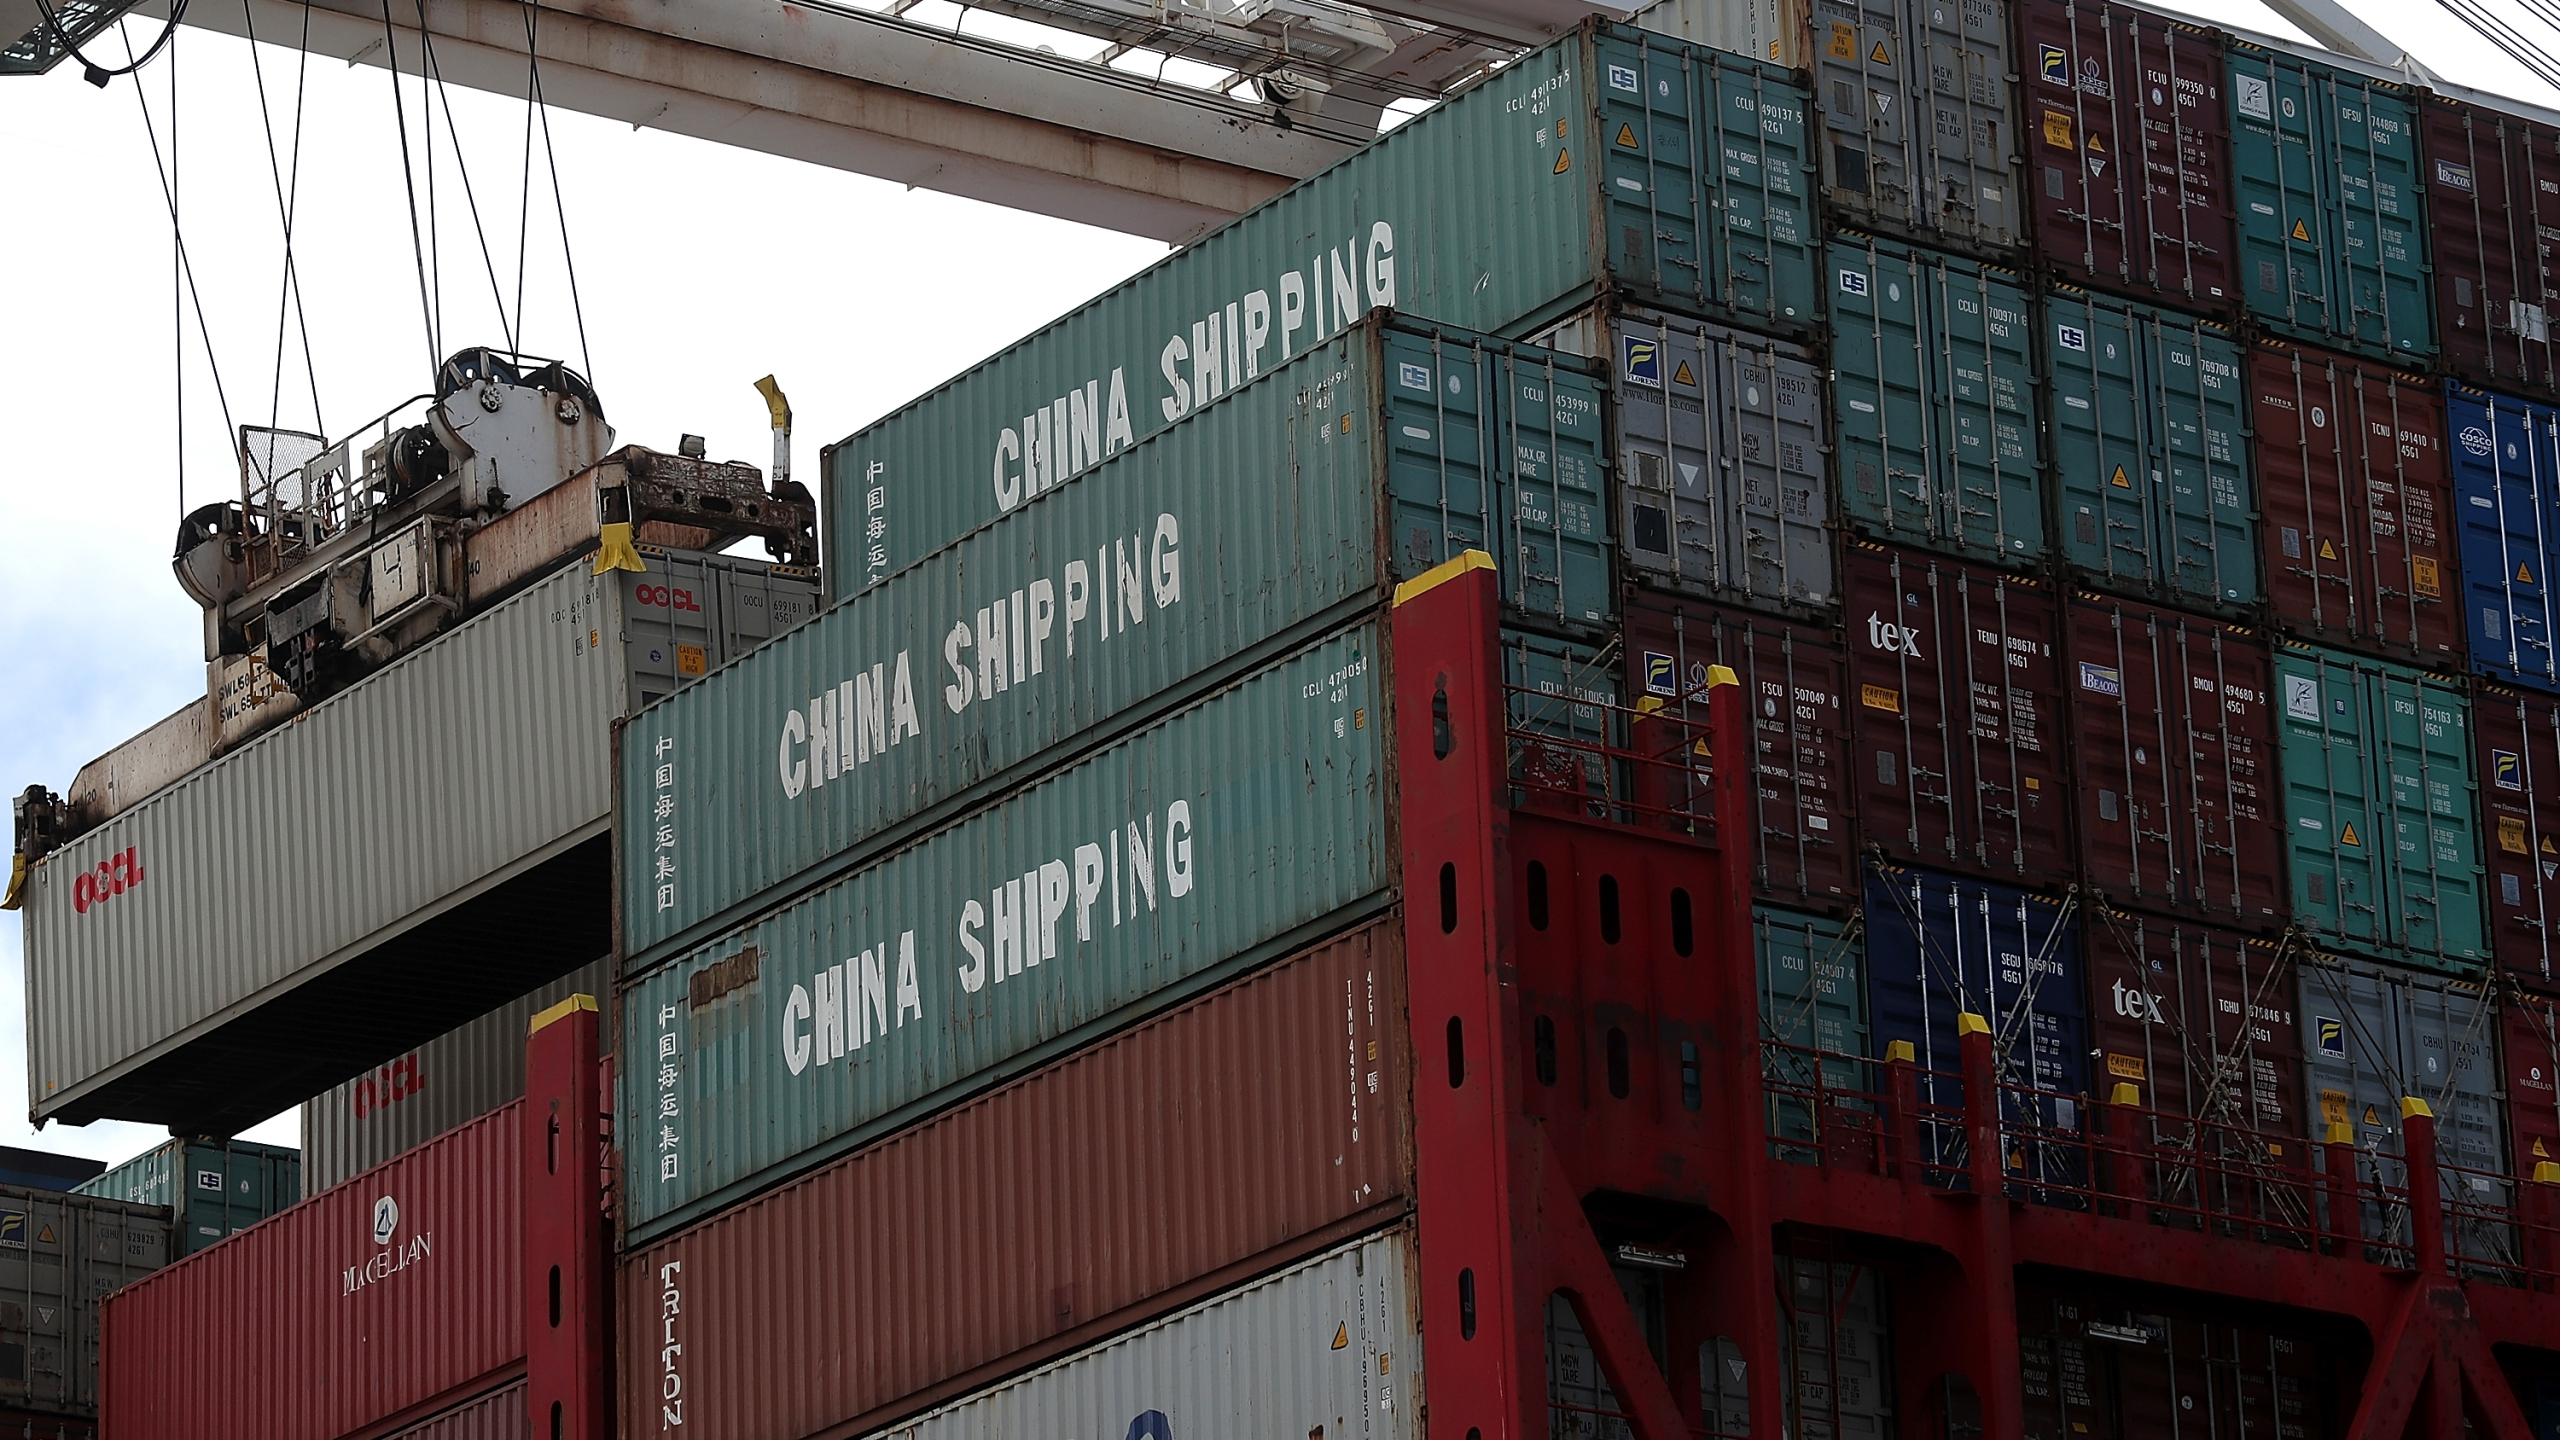 A shipping container is offloaded from the Hong Kong based CSCL East China Sea container ship at the Port of Oakland on June 20, 2018 in Oakland, California. (Justin Sullivan/Getty Images)